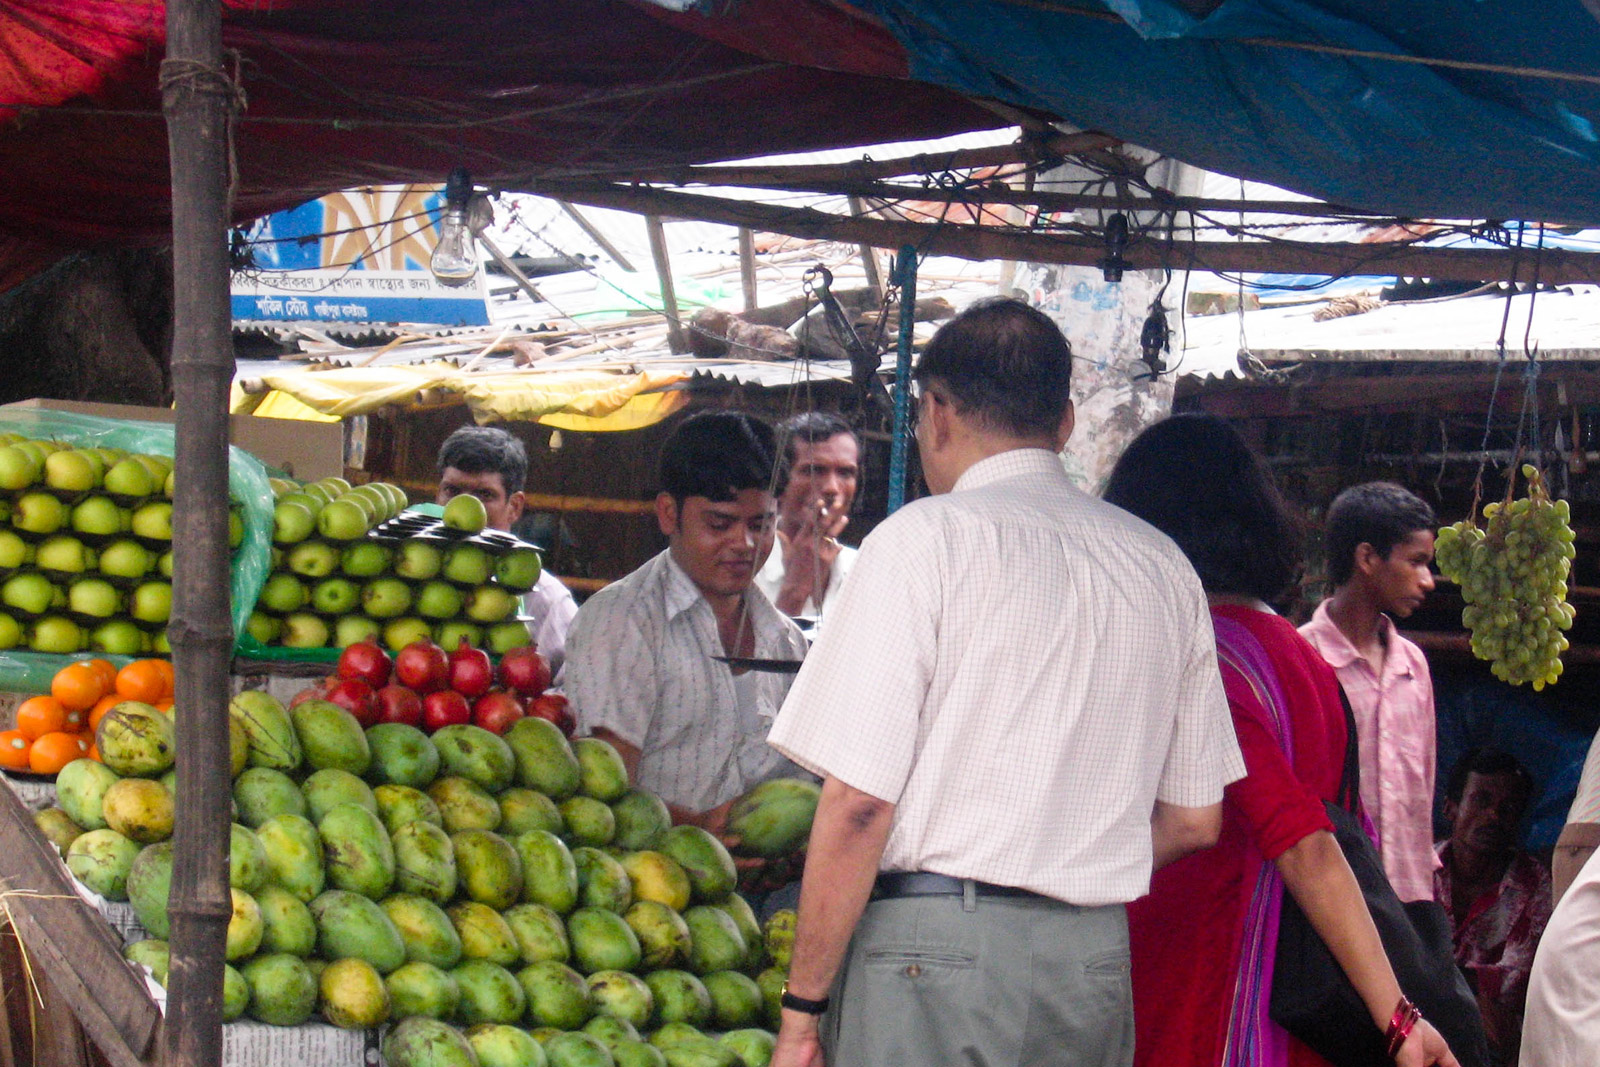 My dad and mom buying mangoes at an open-air market in Bangladesh.